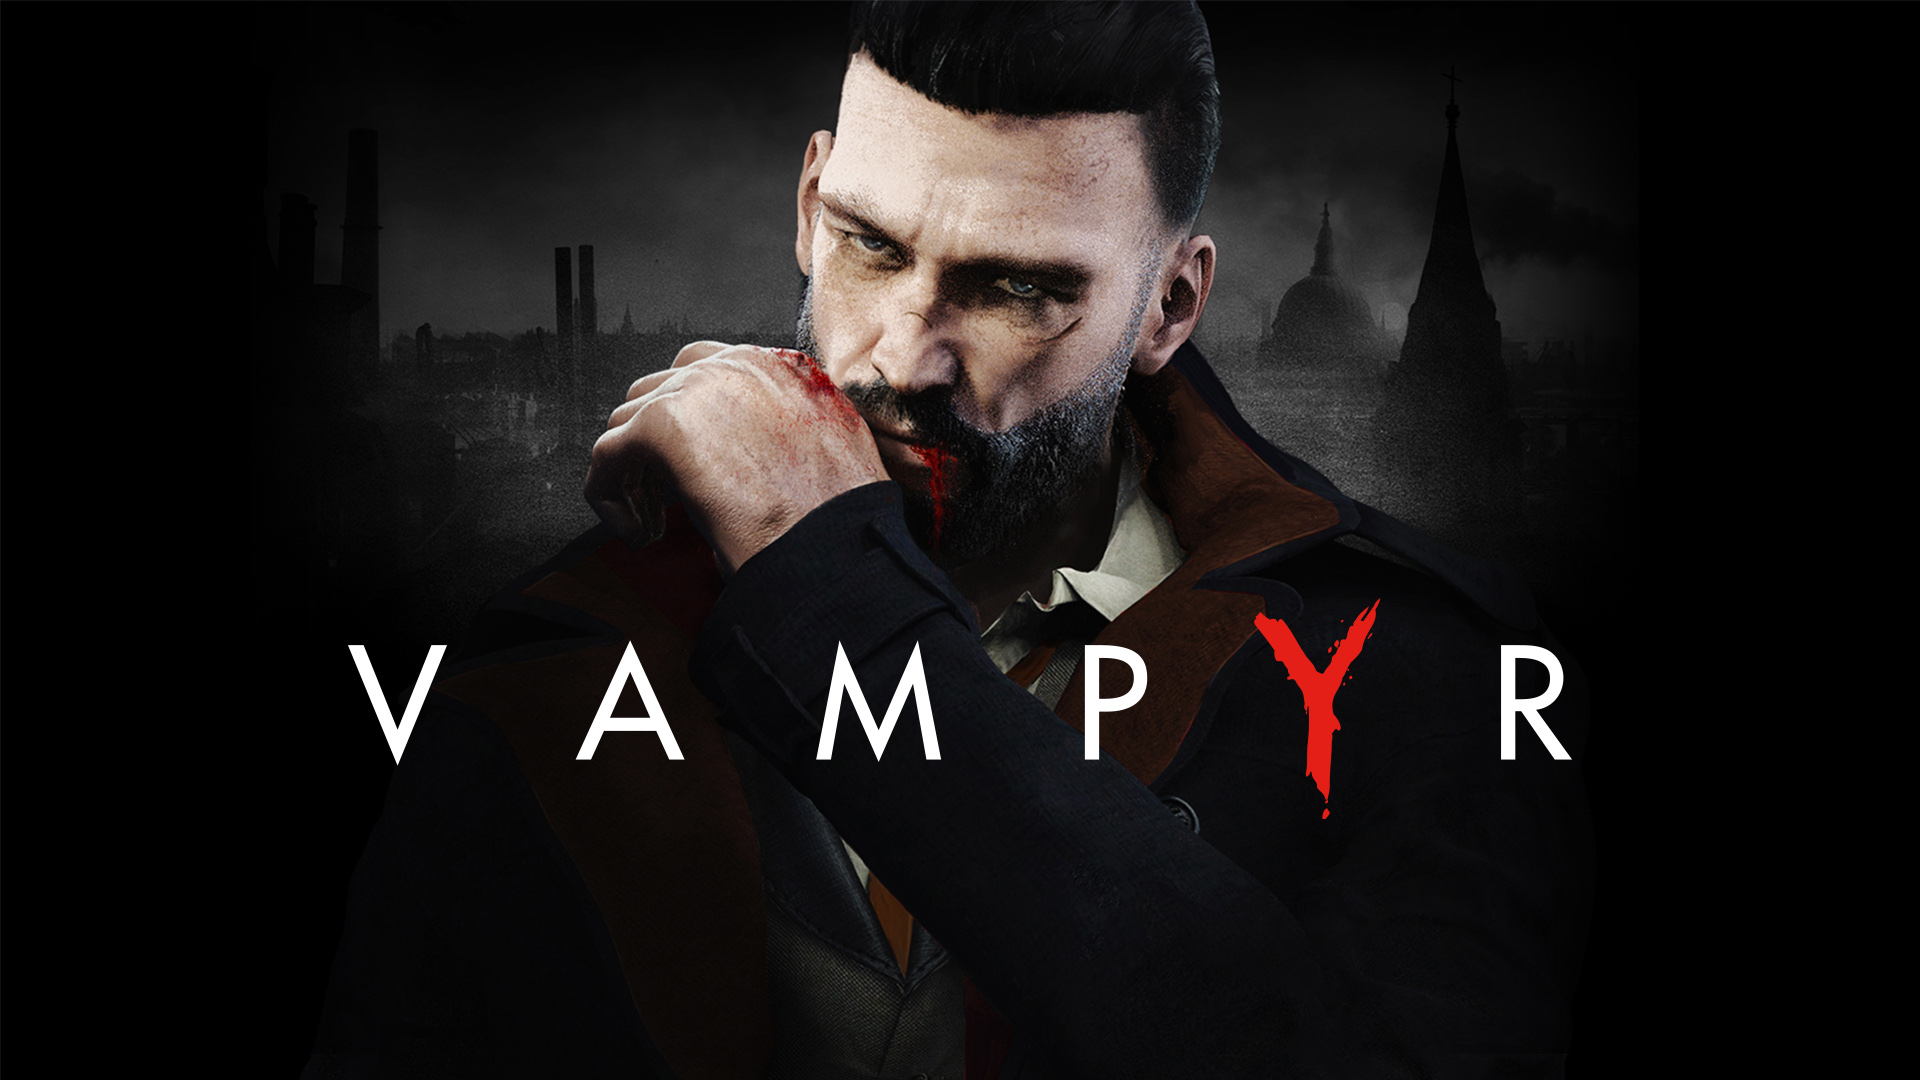 Will You Embrace The Monster Within, Or Fight It? 'Vampyr Is Available Now!